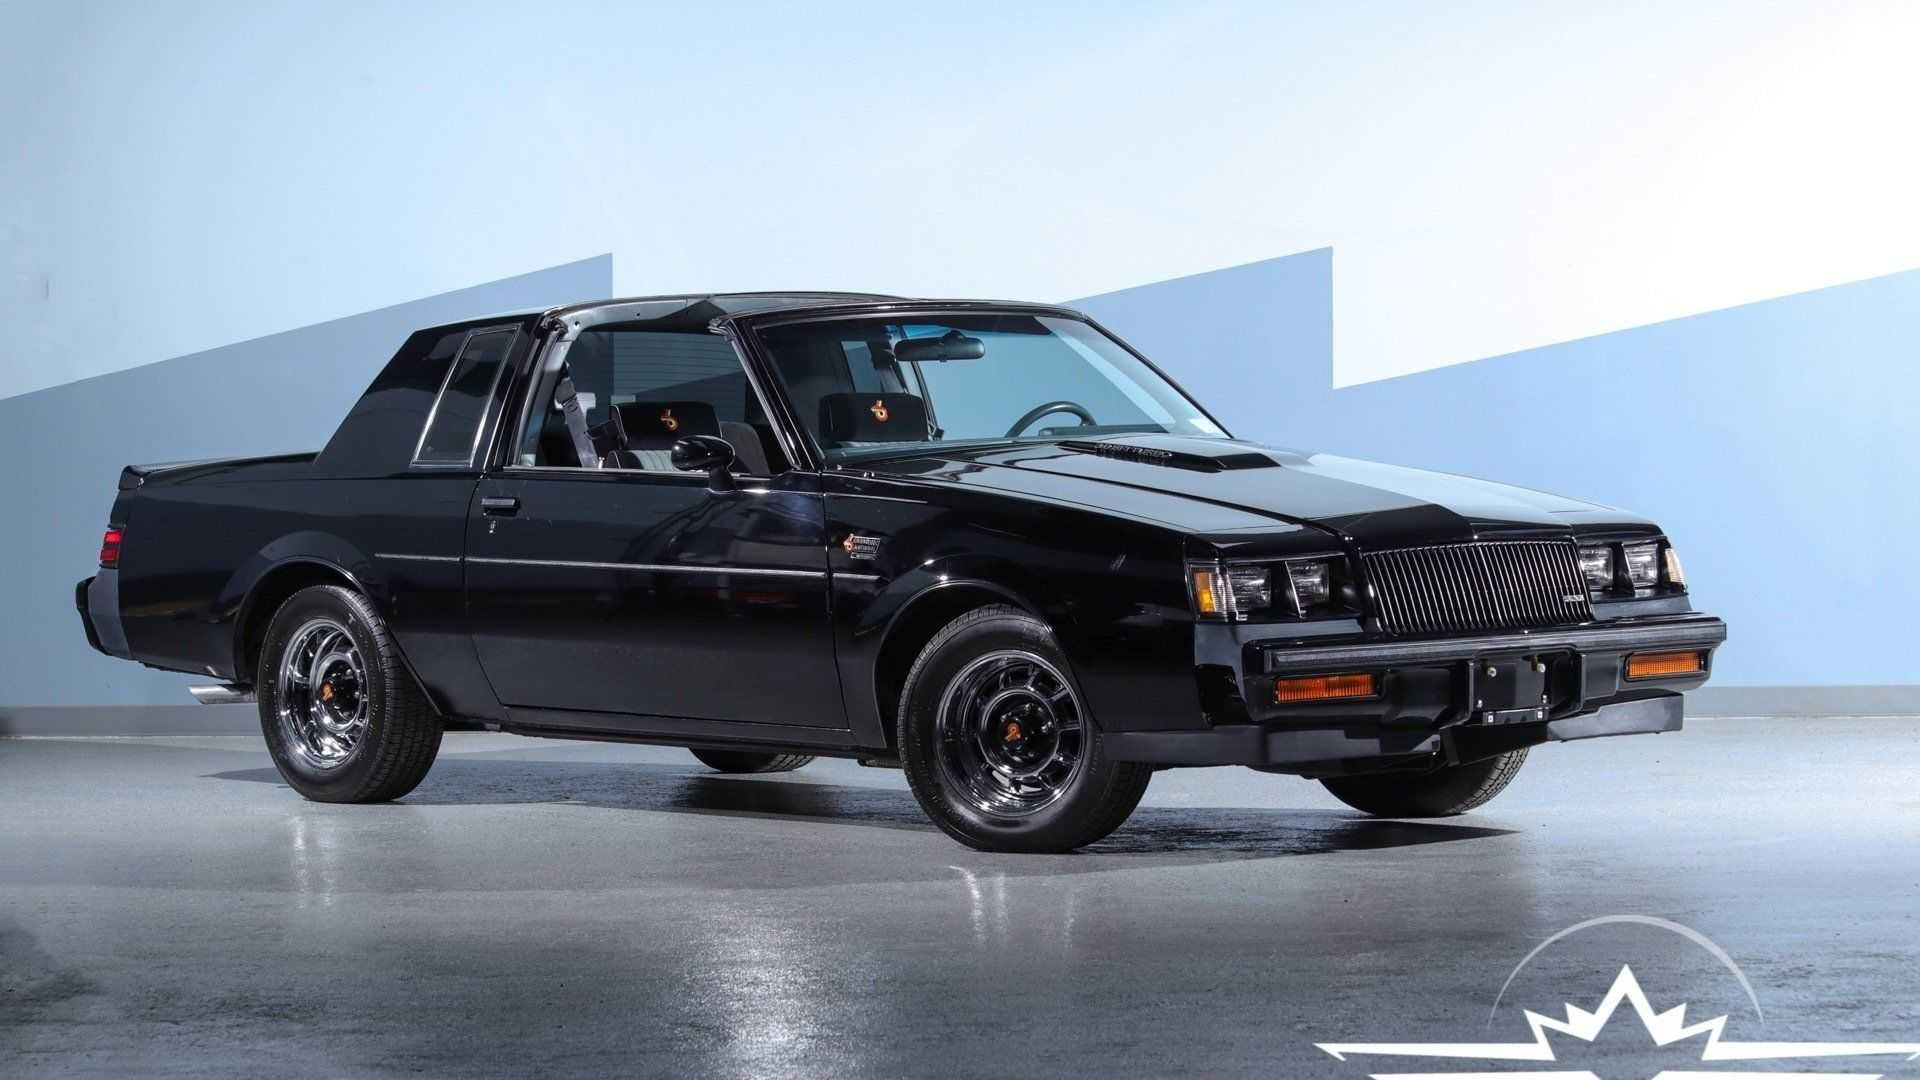 Completely Original 1987 Buick Grand National Is A Rare